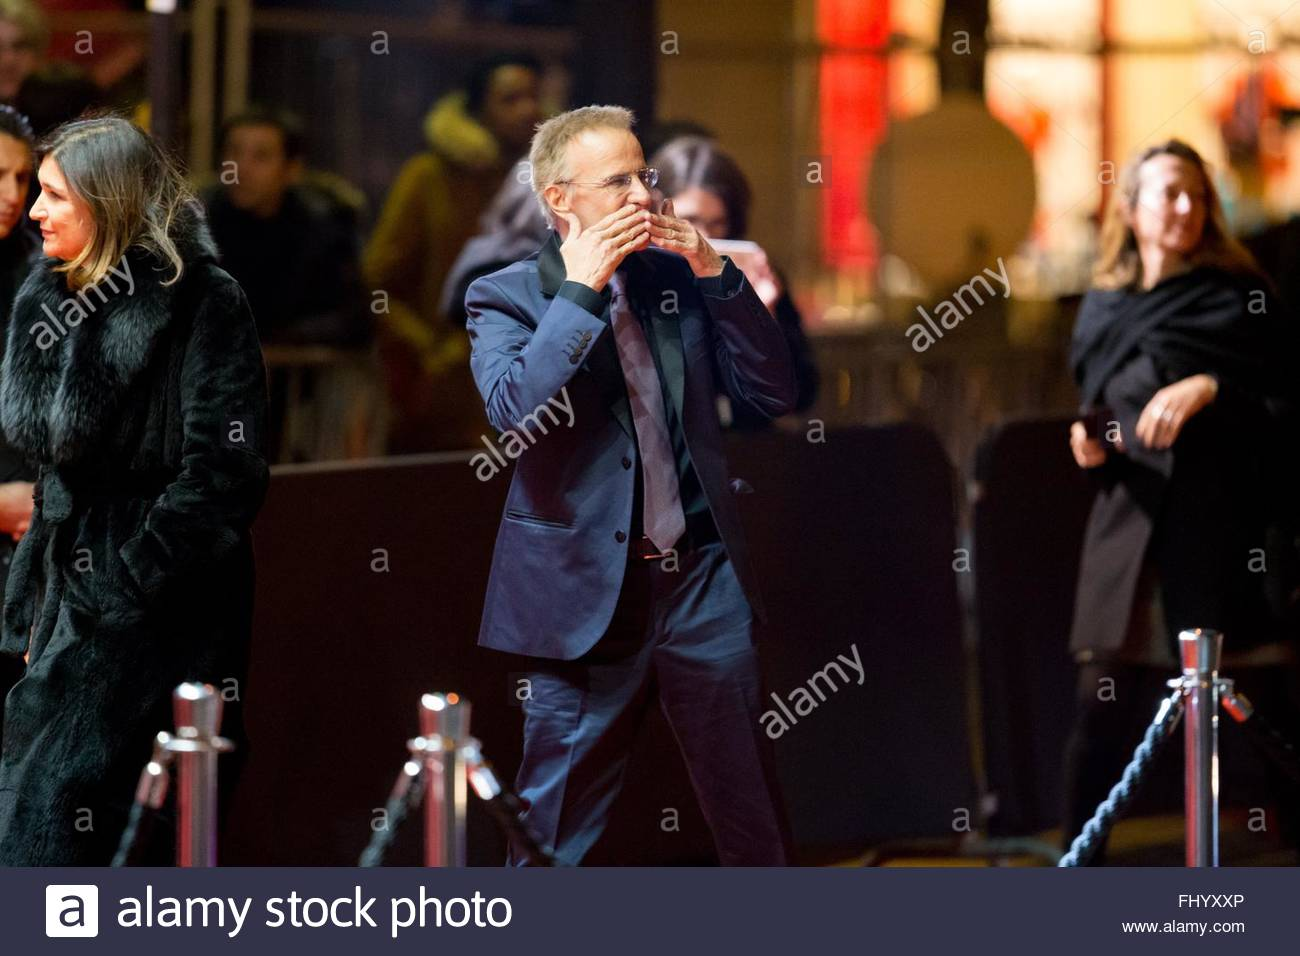 Paris, France. February 26th, 2016. FRANCE, Paris: French actor Christophe Lambert walks on the red carpet of the - Stock Image